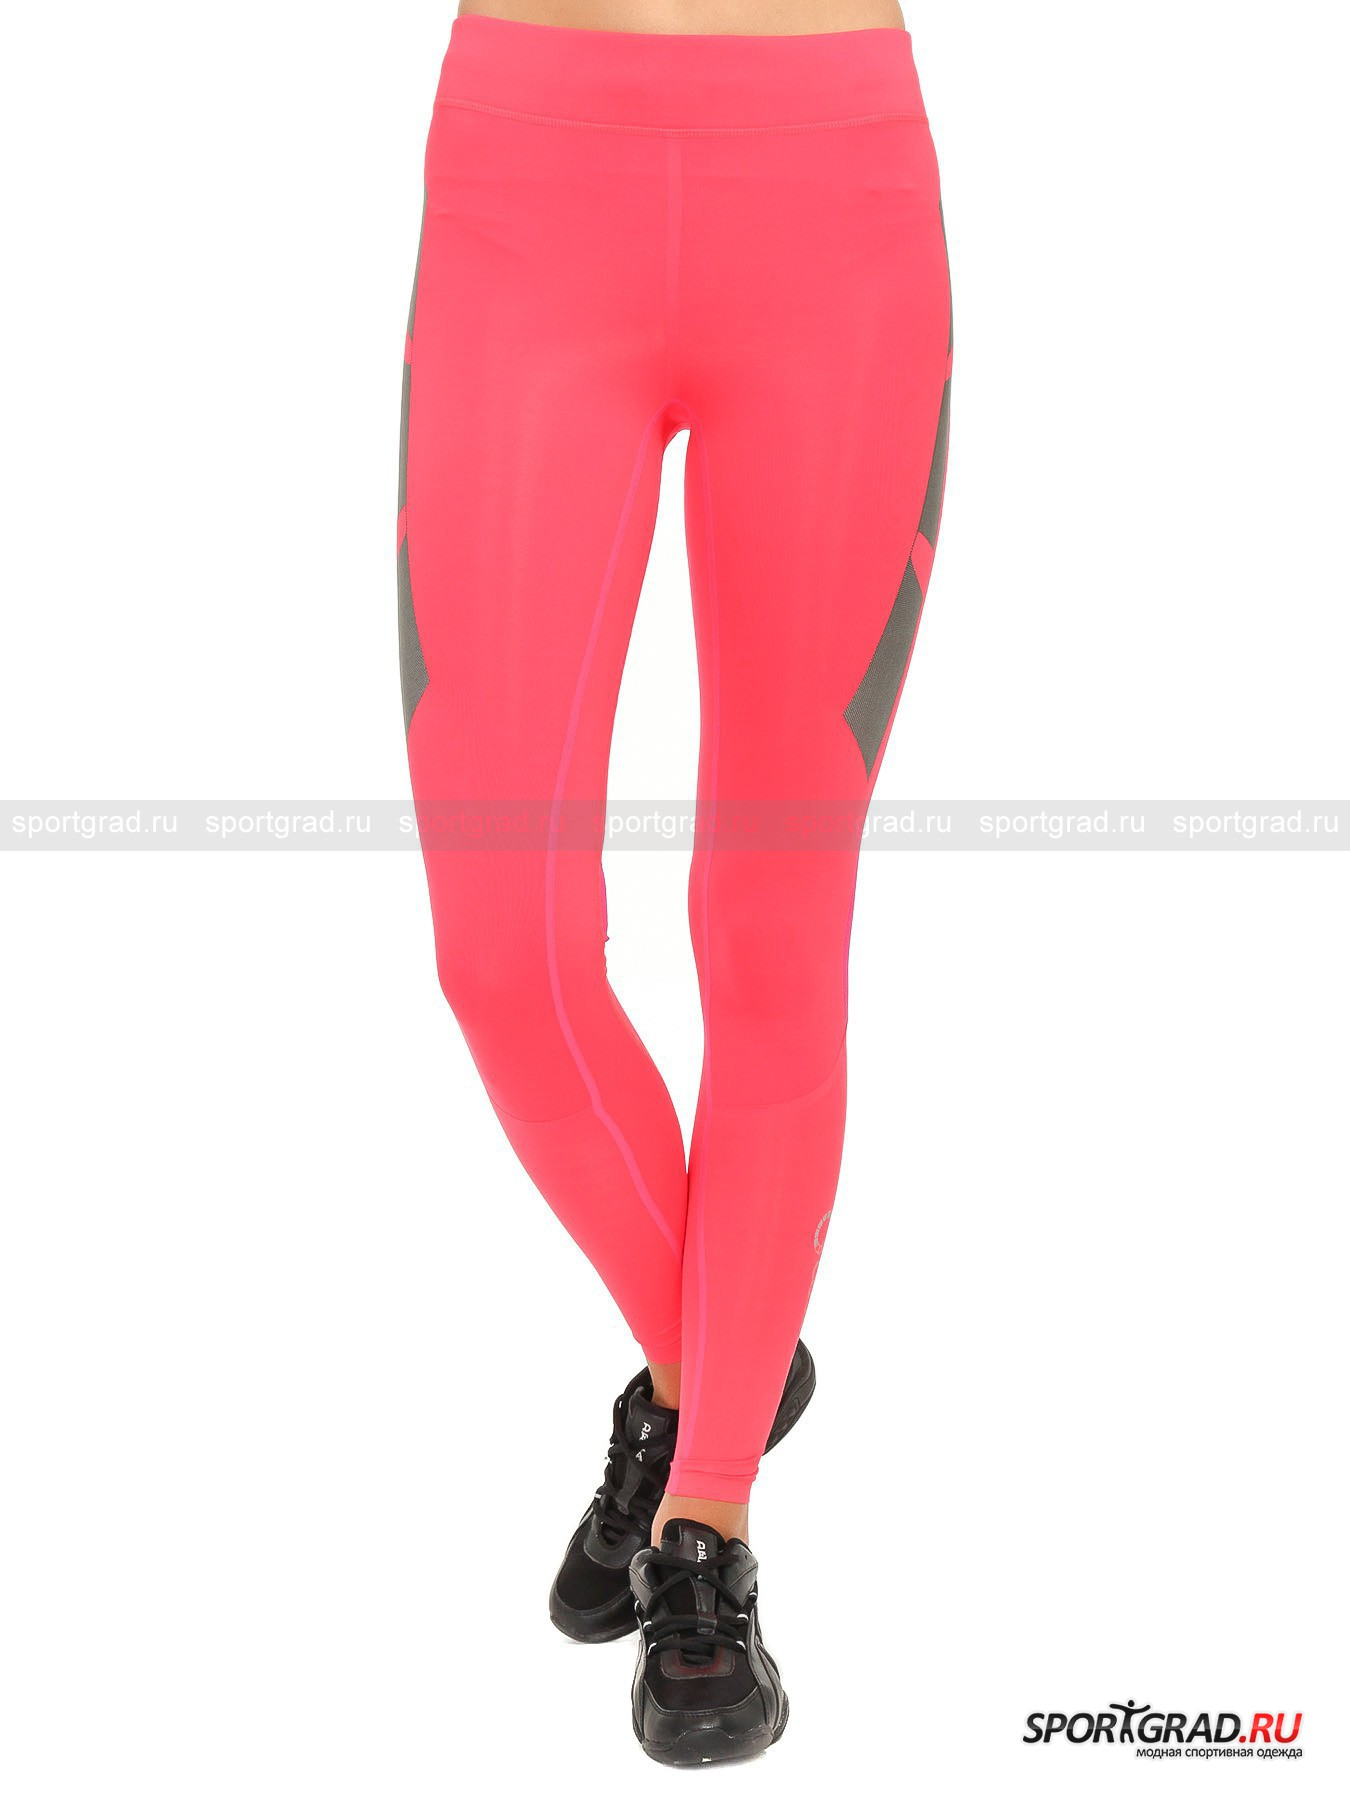 ����� ���. Fast track tights CASALL